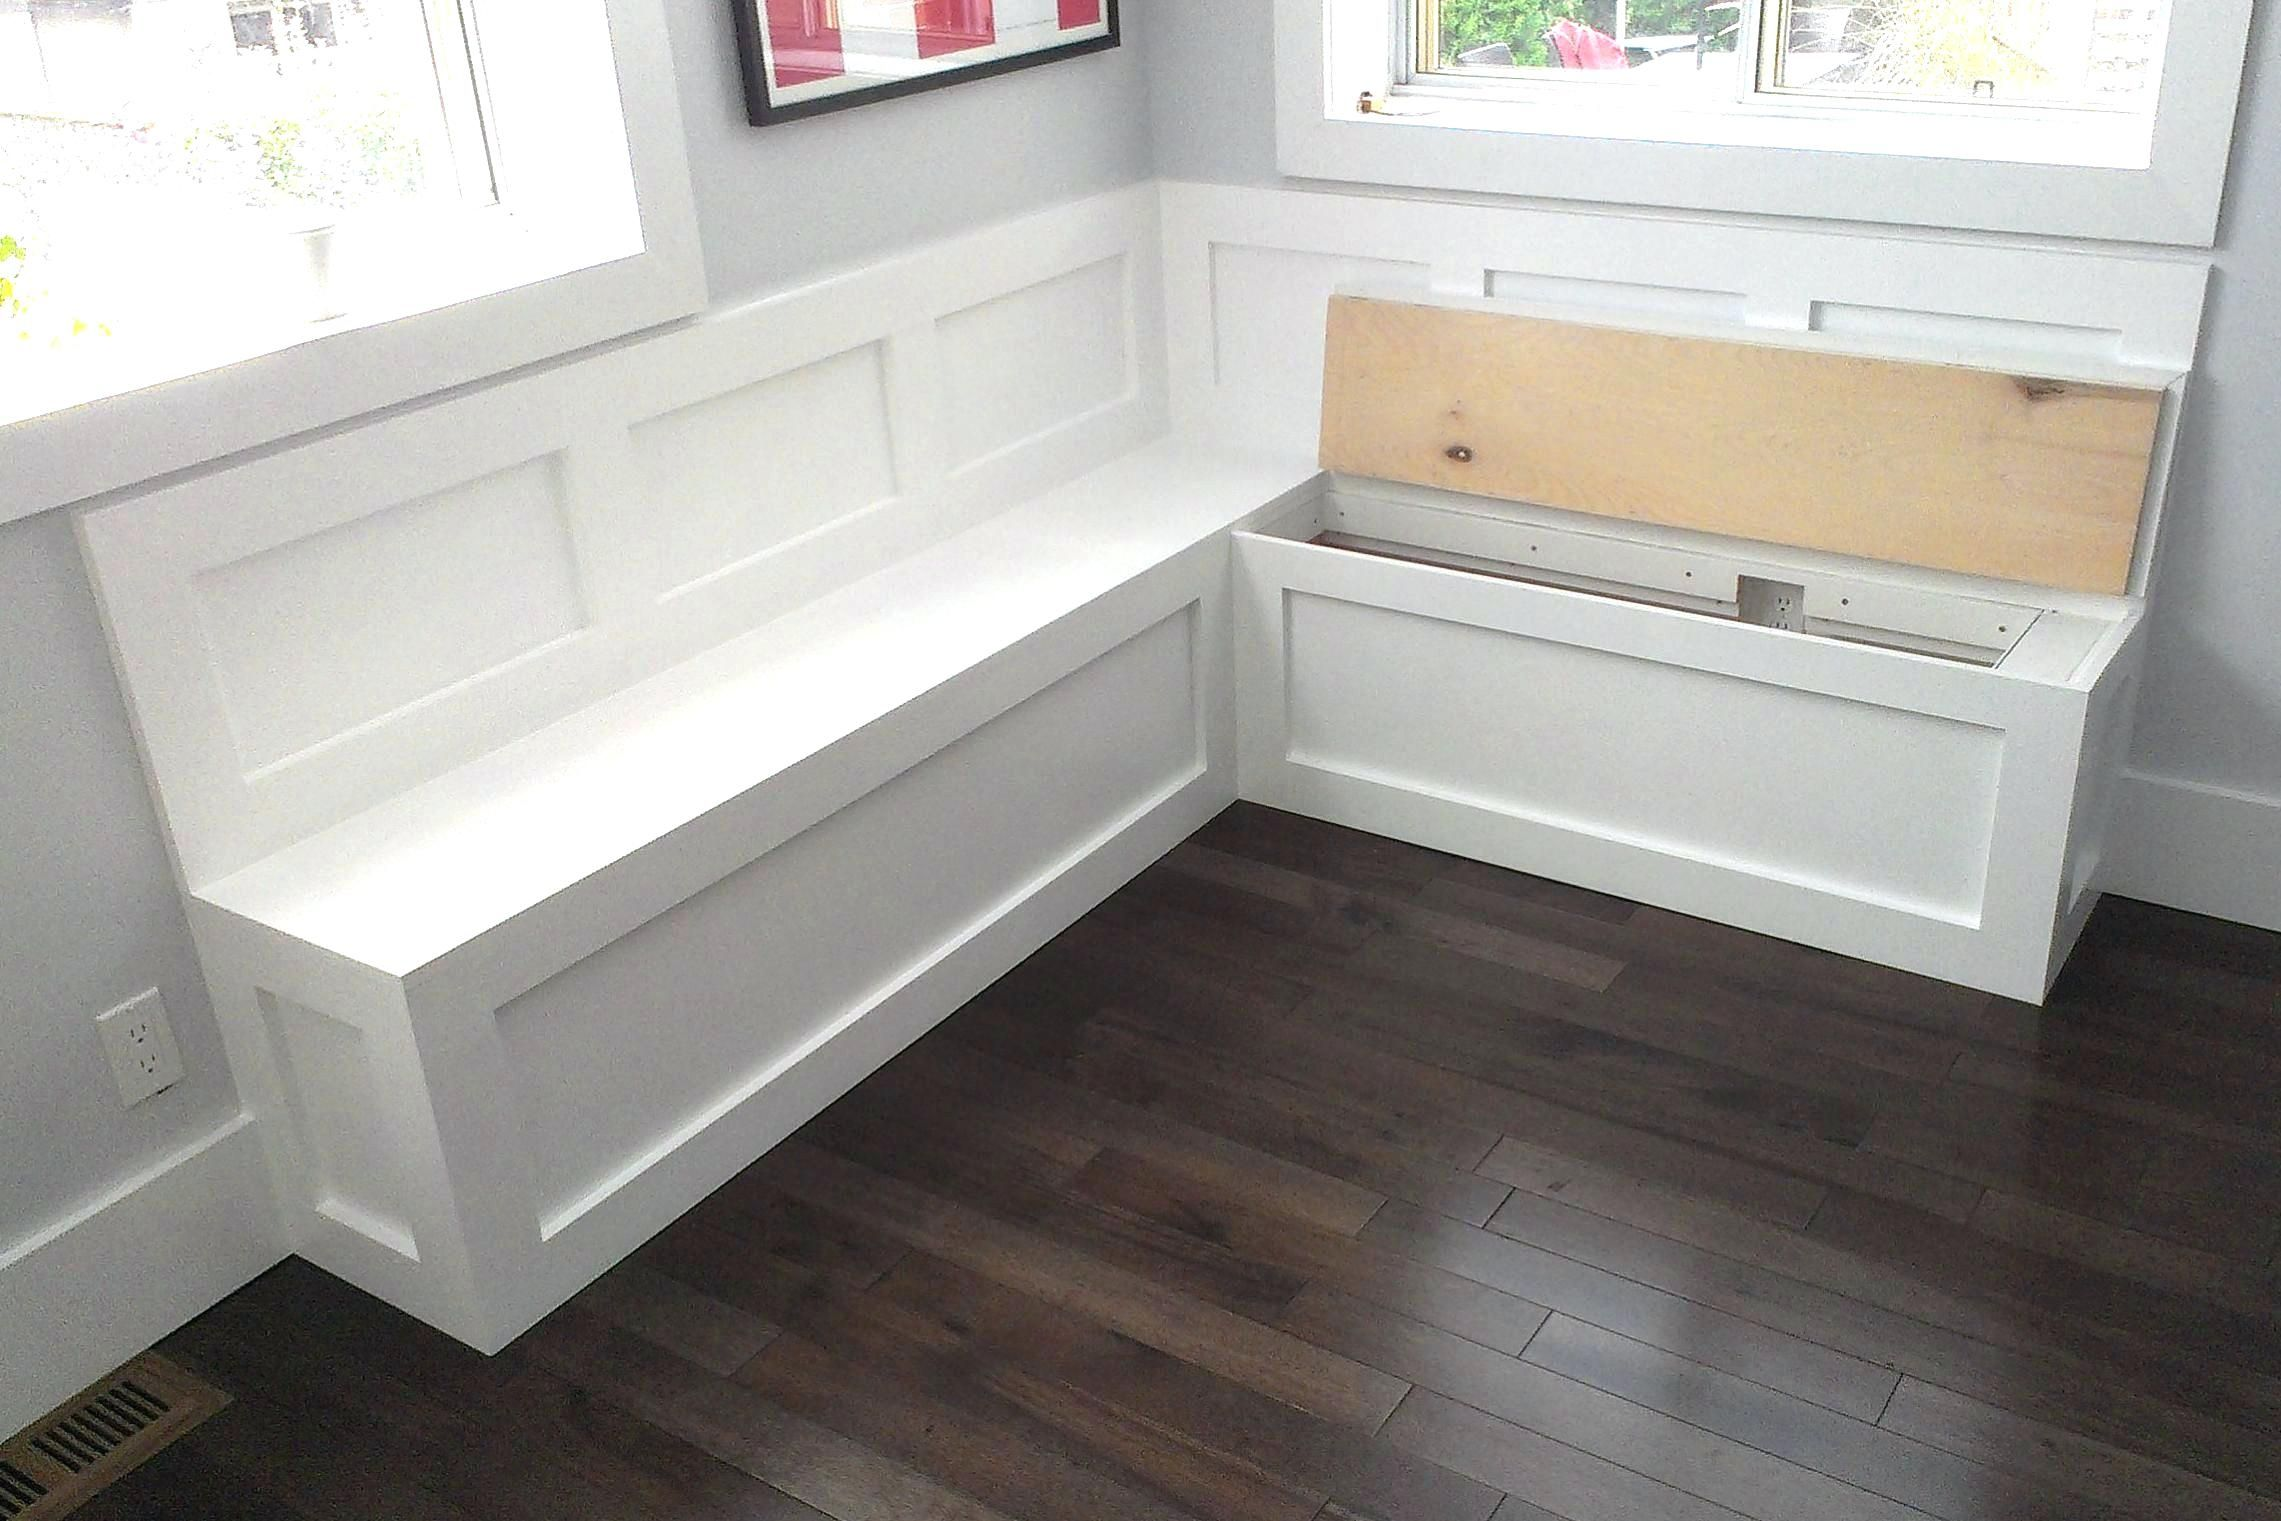 With Storage Plans Kitchen Bench Seating With Front Porch